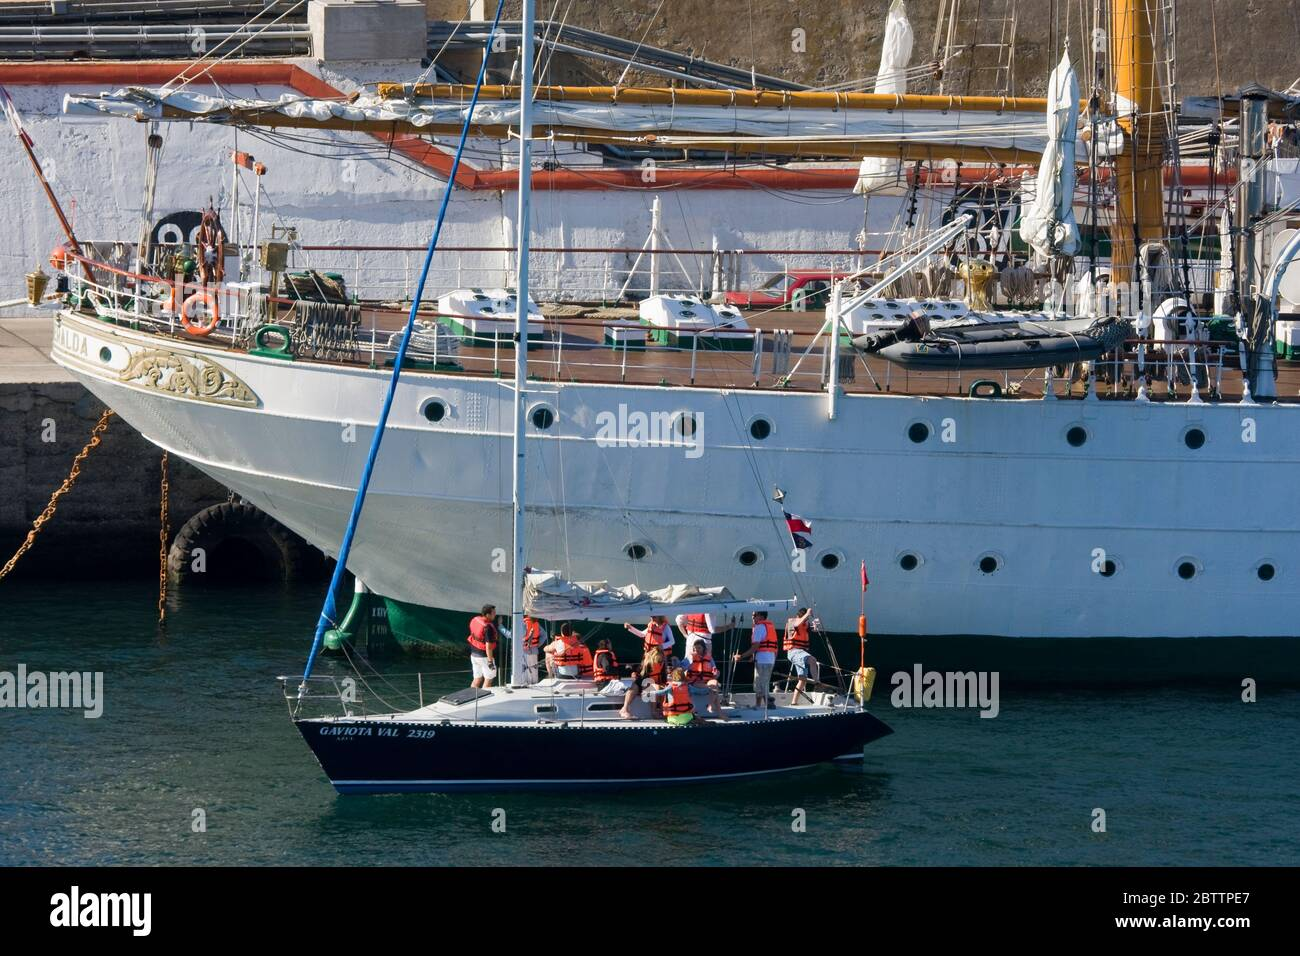 Sailing ship & yacht in Valparaiso Port, Chile, South America Stock Photo